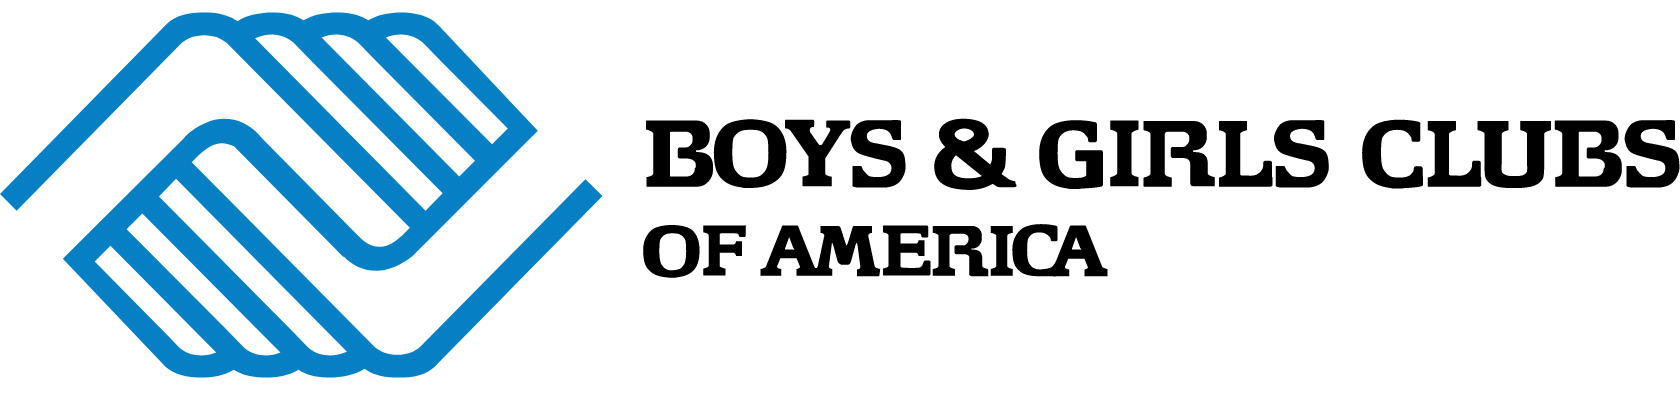 boys and girls club of america Check out director profiles at boys girls clubs of america, job listings & salaries review & learn skills to be a director.